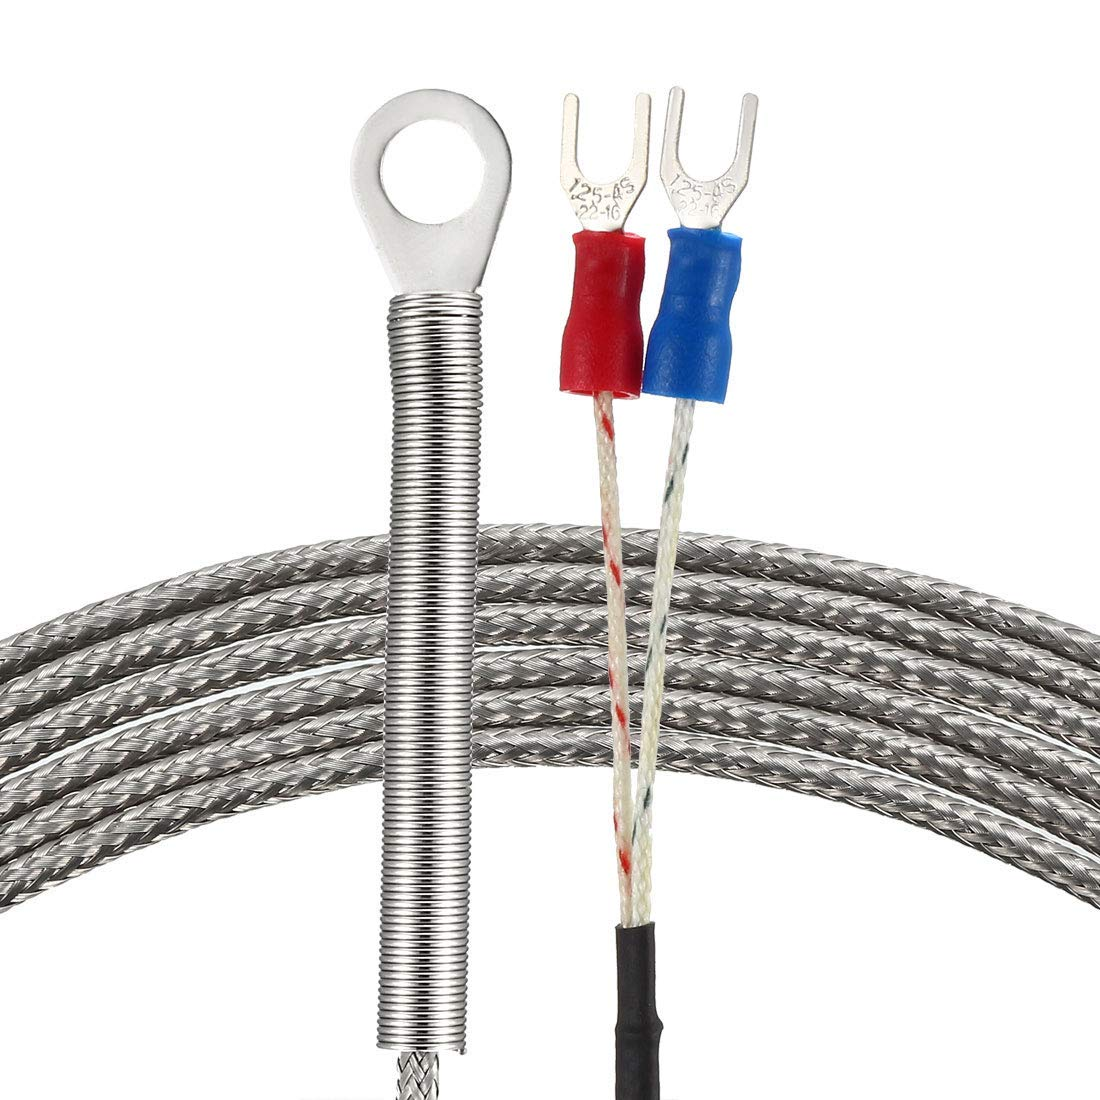 0-400C E Type thermocouple Temperature Sensor Probe with 5M Cable 6mm Hole Spring 32-752F